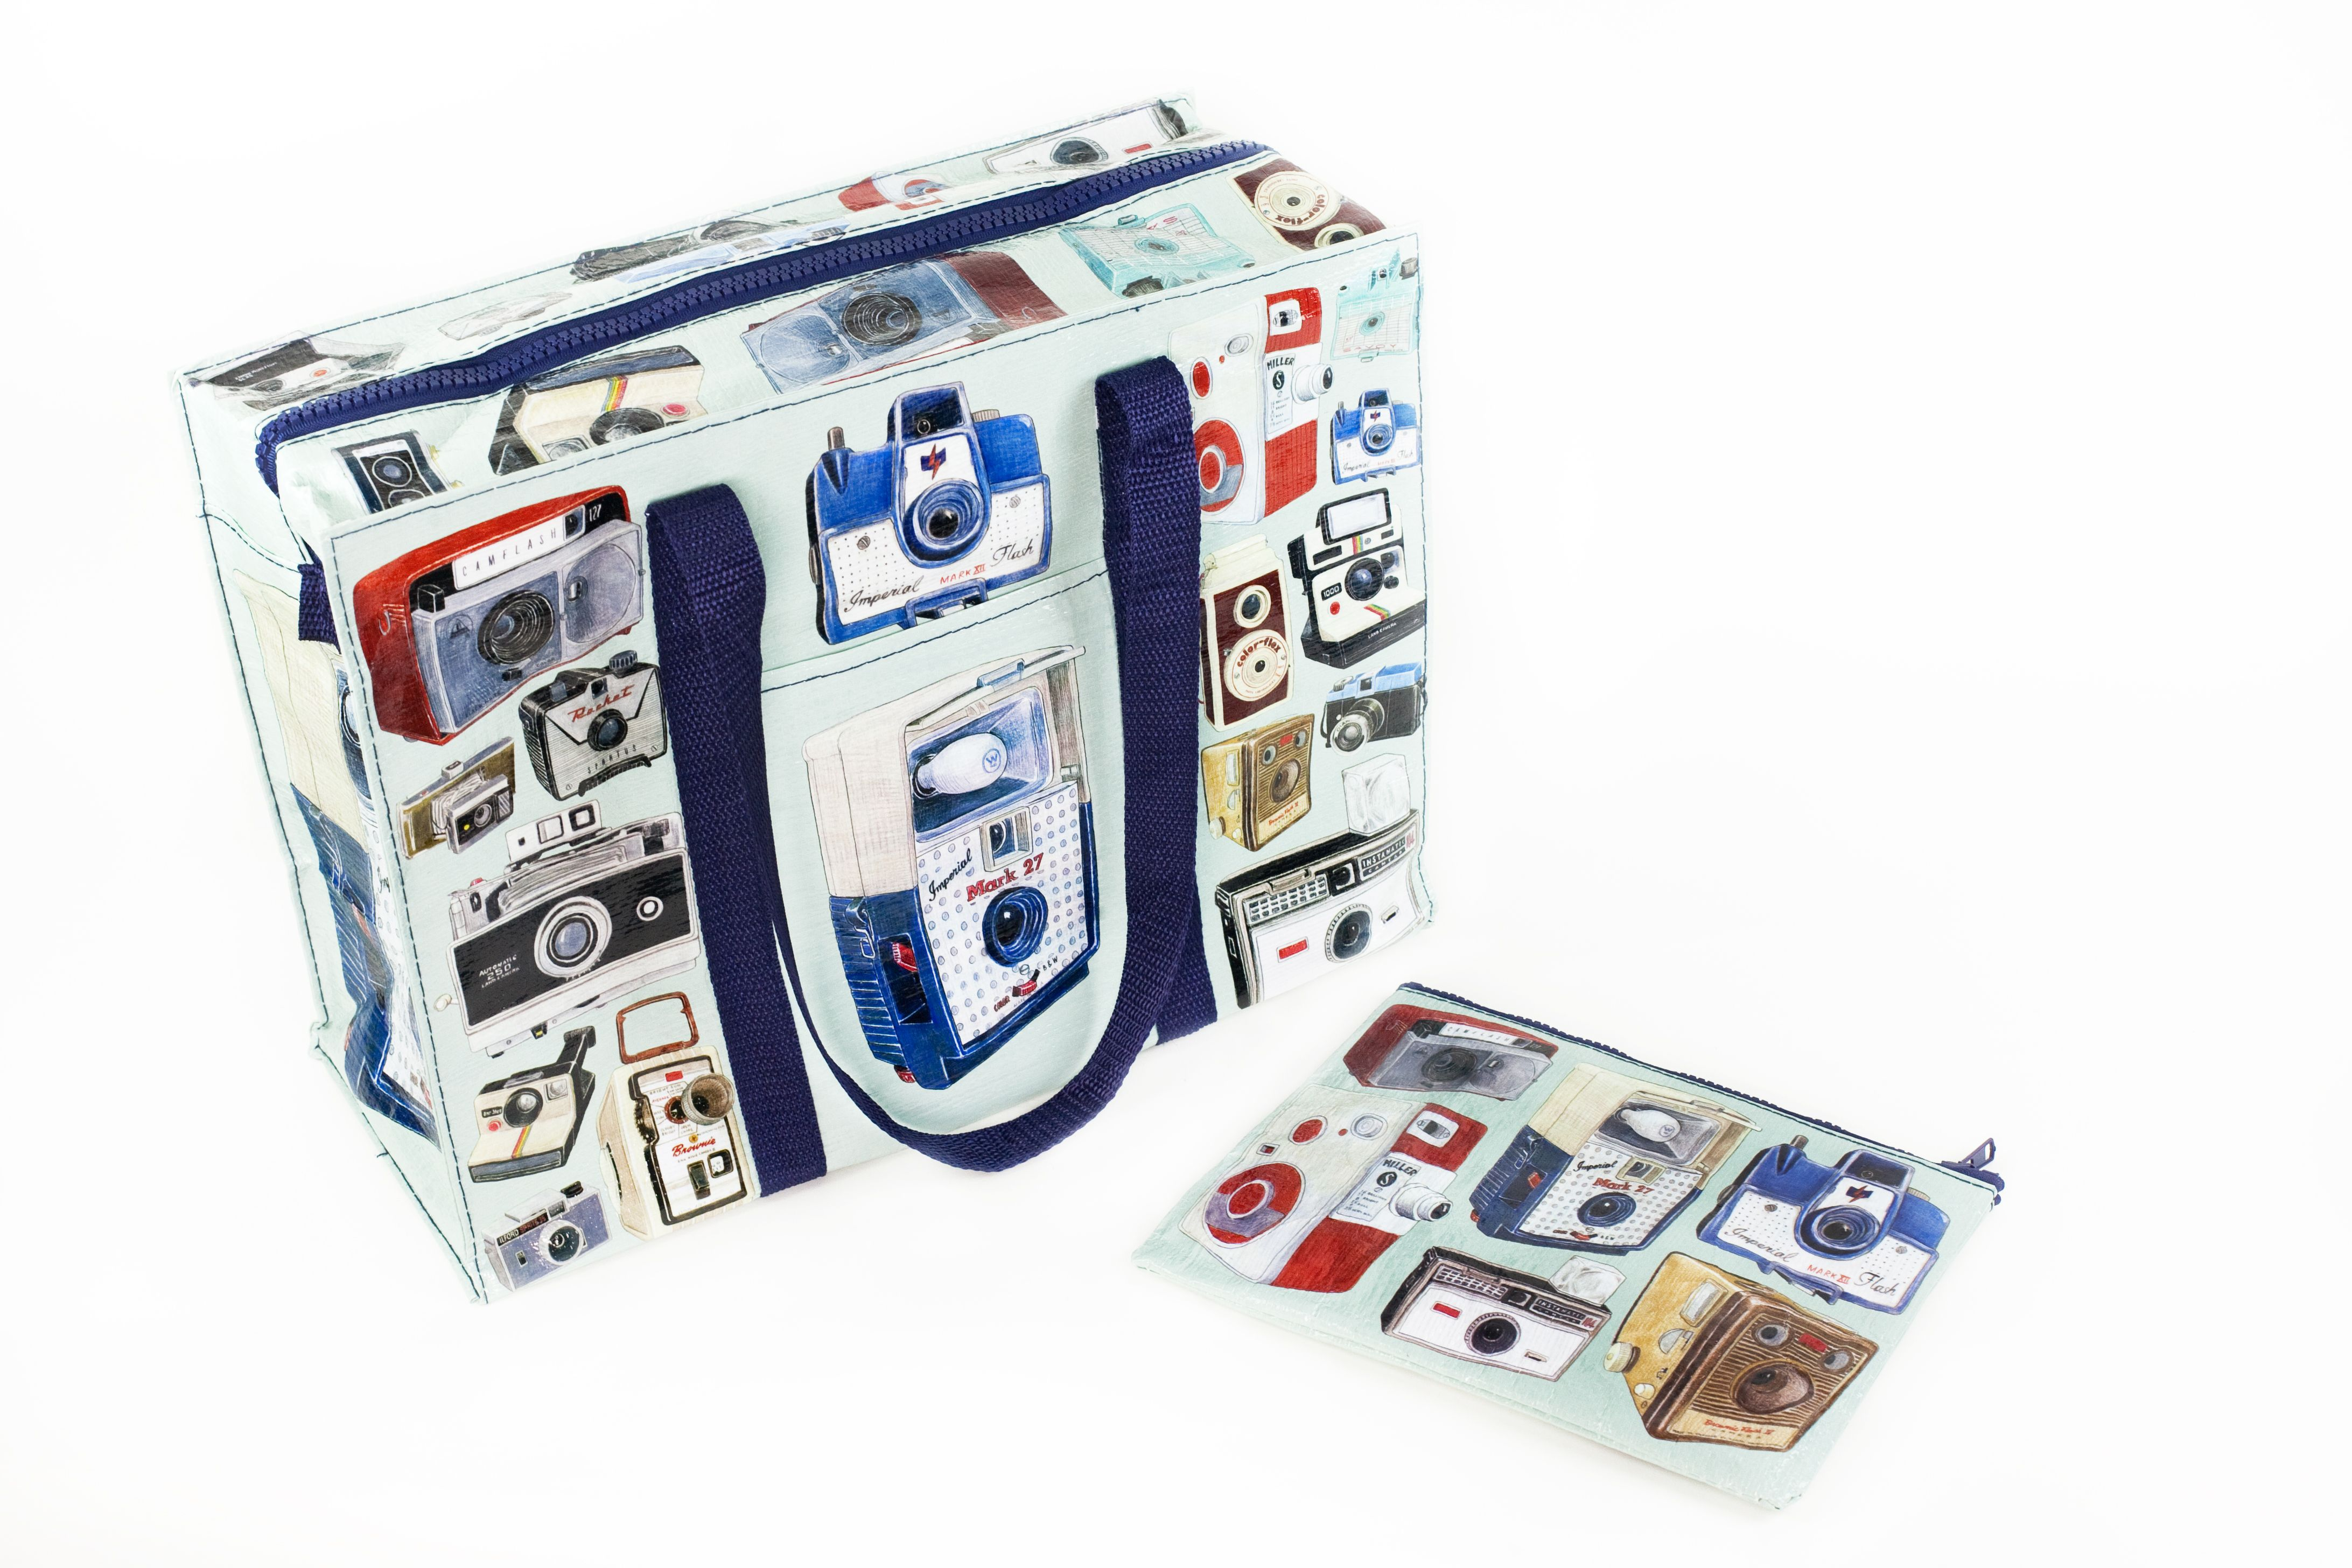 Vintage Camera Tote and Pouch - Flaunt your undying camera love with an uber-cool illustrated bag set. ($25.00, http://photojojo.com/store)